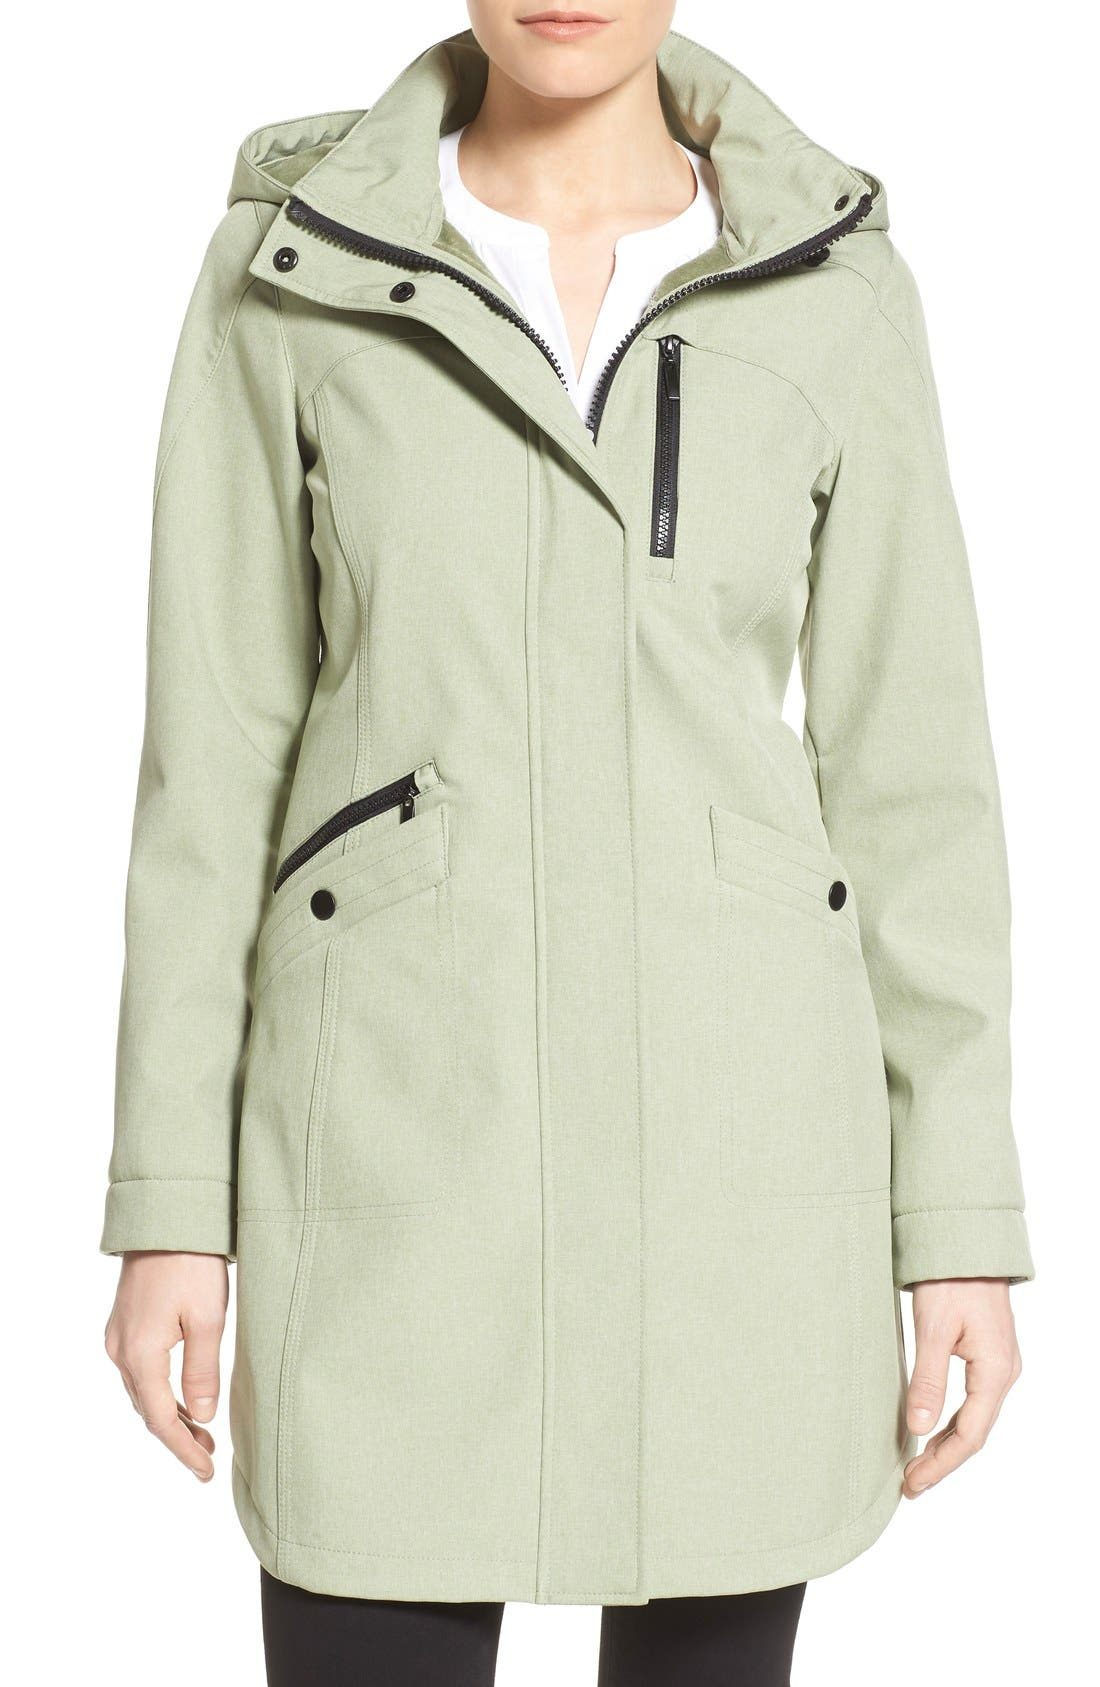 Alternate Image 1 Selected - Kristen Blake Crossdye Hooded Soft Shell Jacket (Regular & Petite)